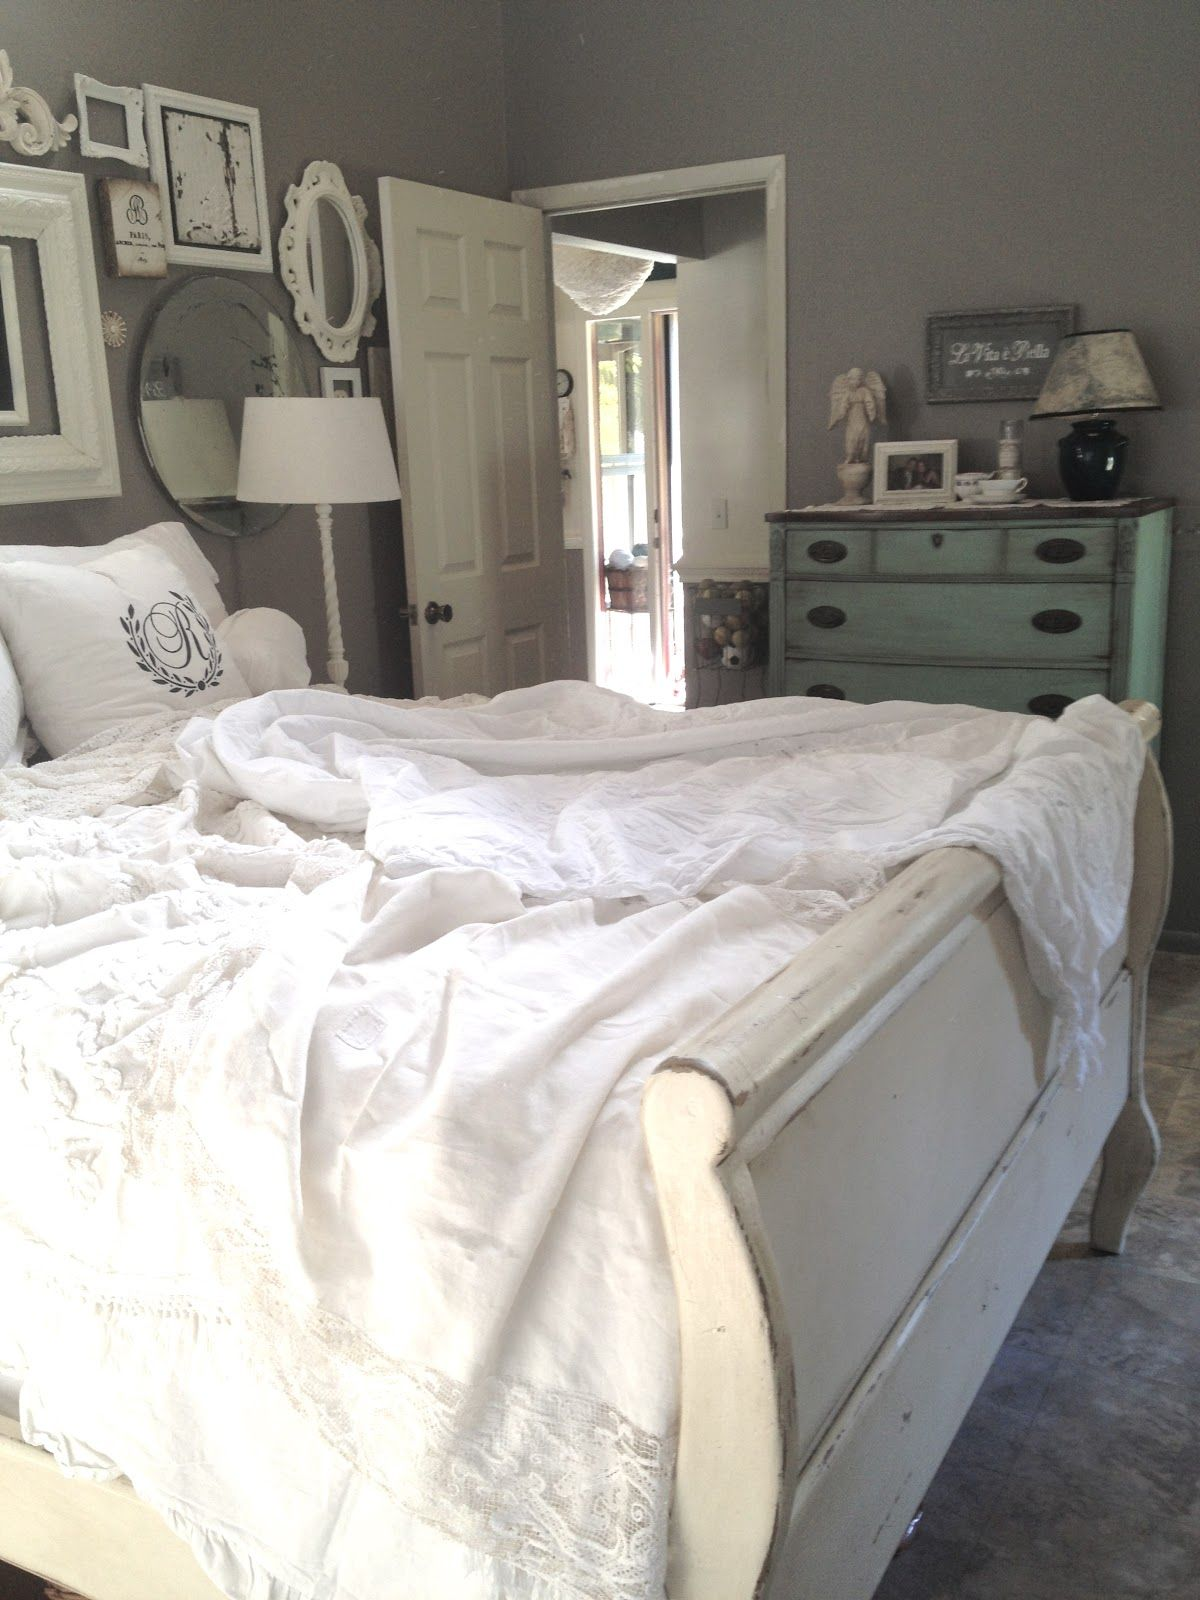 mesmerizing bed frame light brown grey bedroom walls | White linens, gray walls. I love this so much!! My walls ...